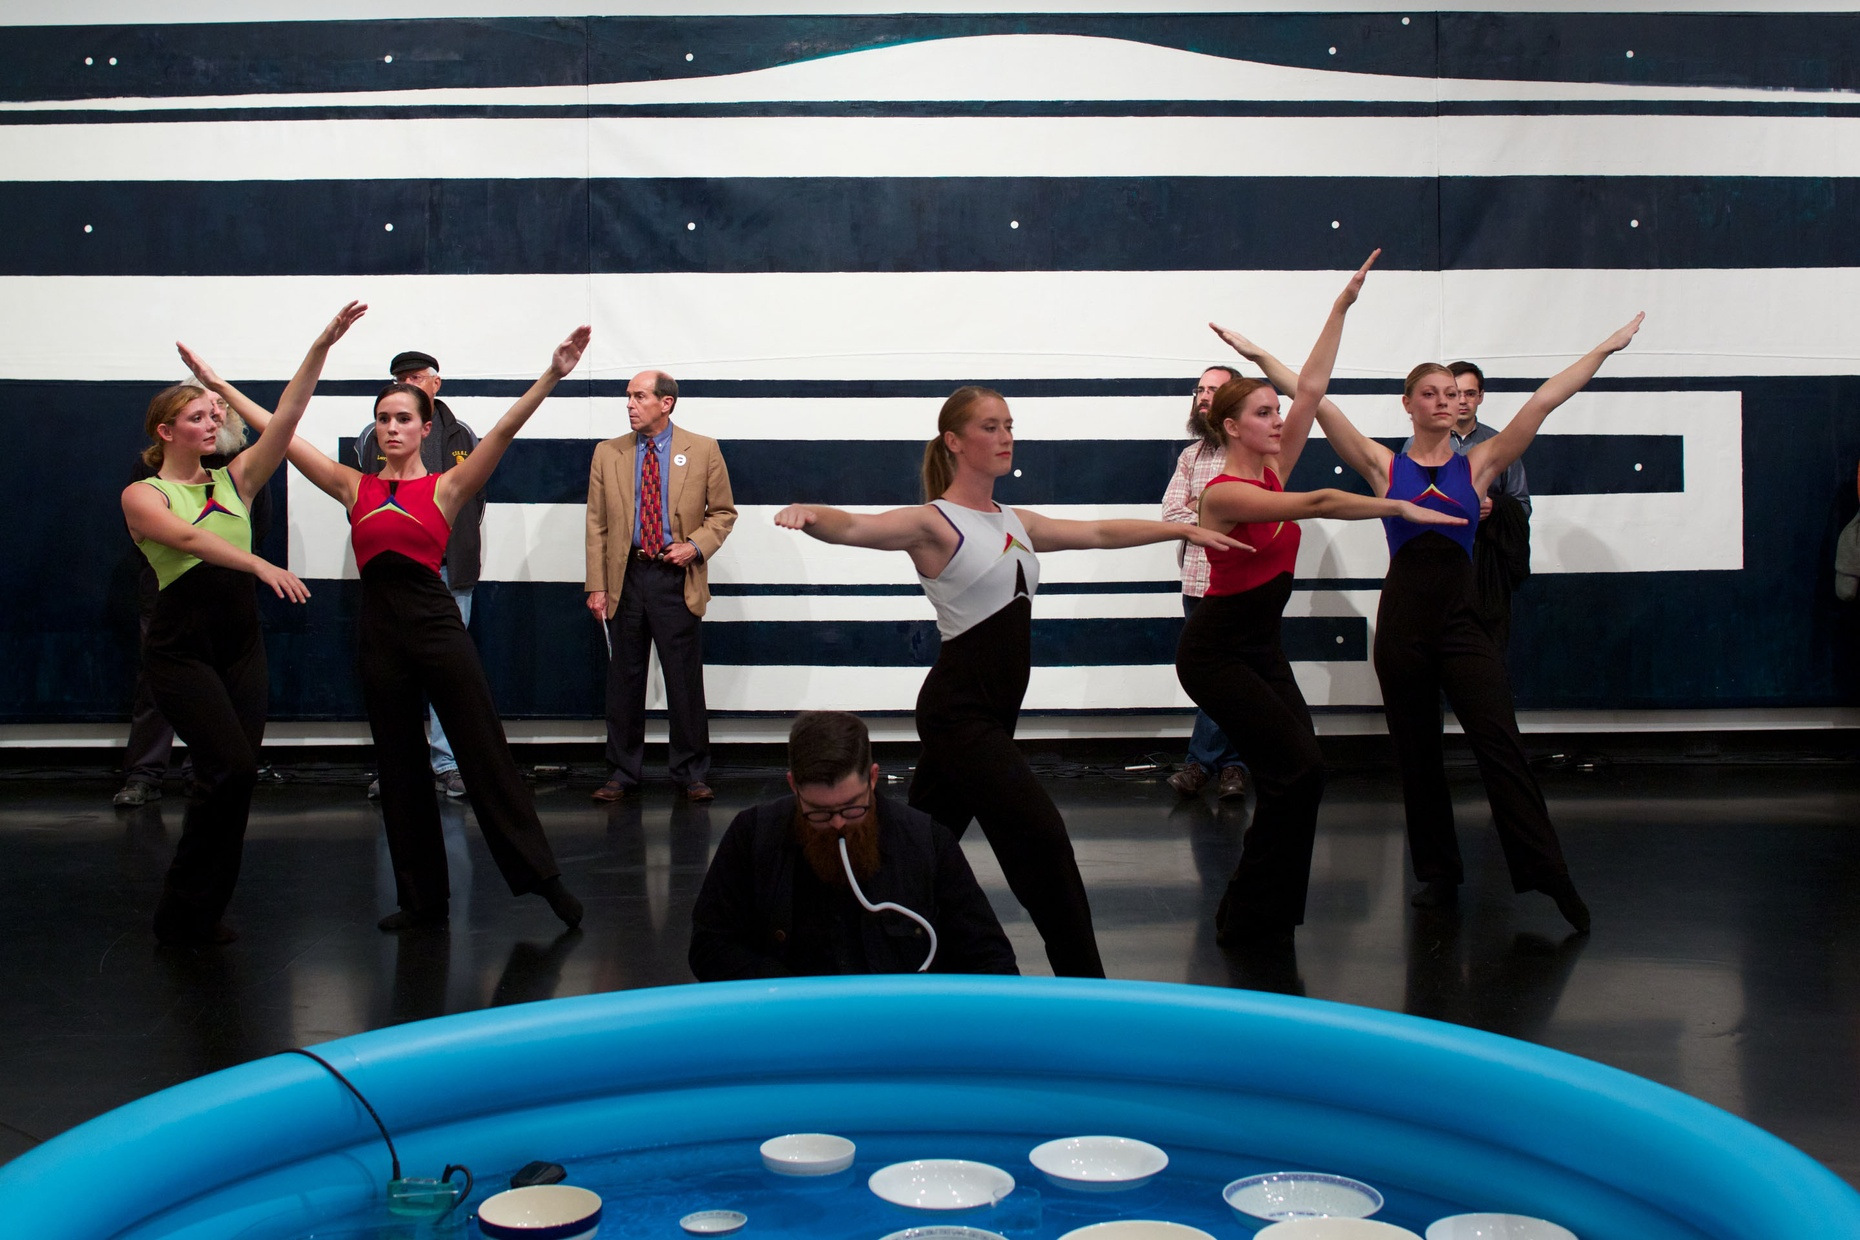 A group of light-skinned, female dancers pose in front of a black and white painted wall with a group of people looking on. In front of the dancers, there is a blue, blow-up pool with white bowls floating in it and a man crouching by it.